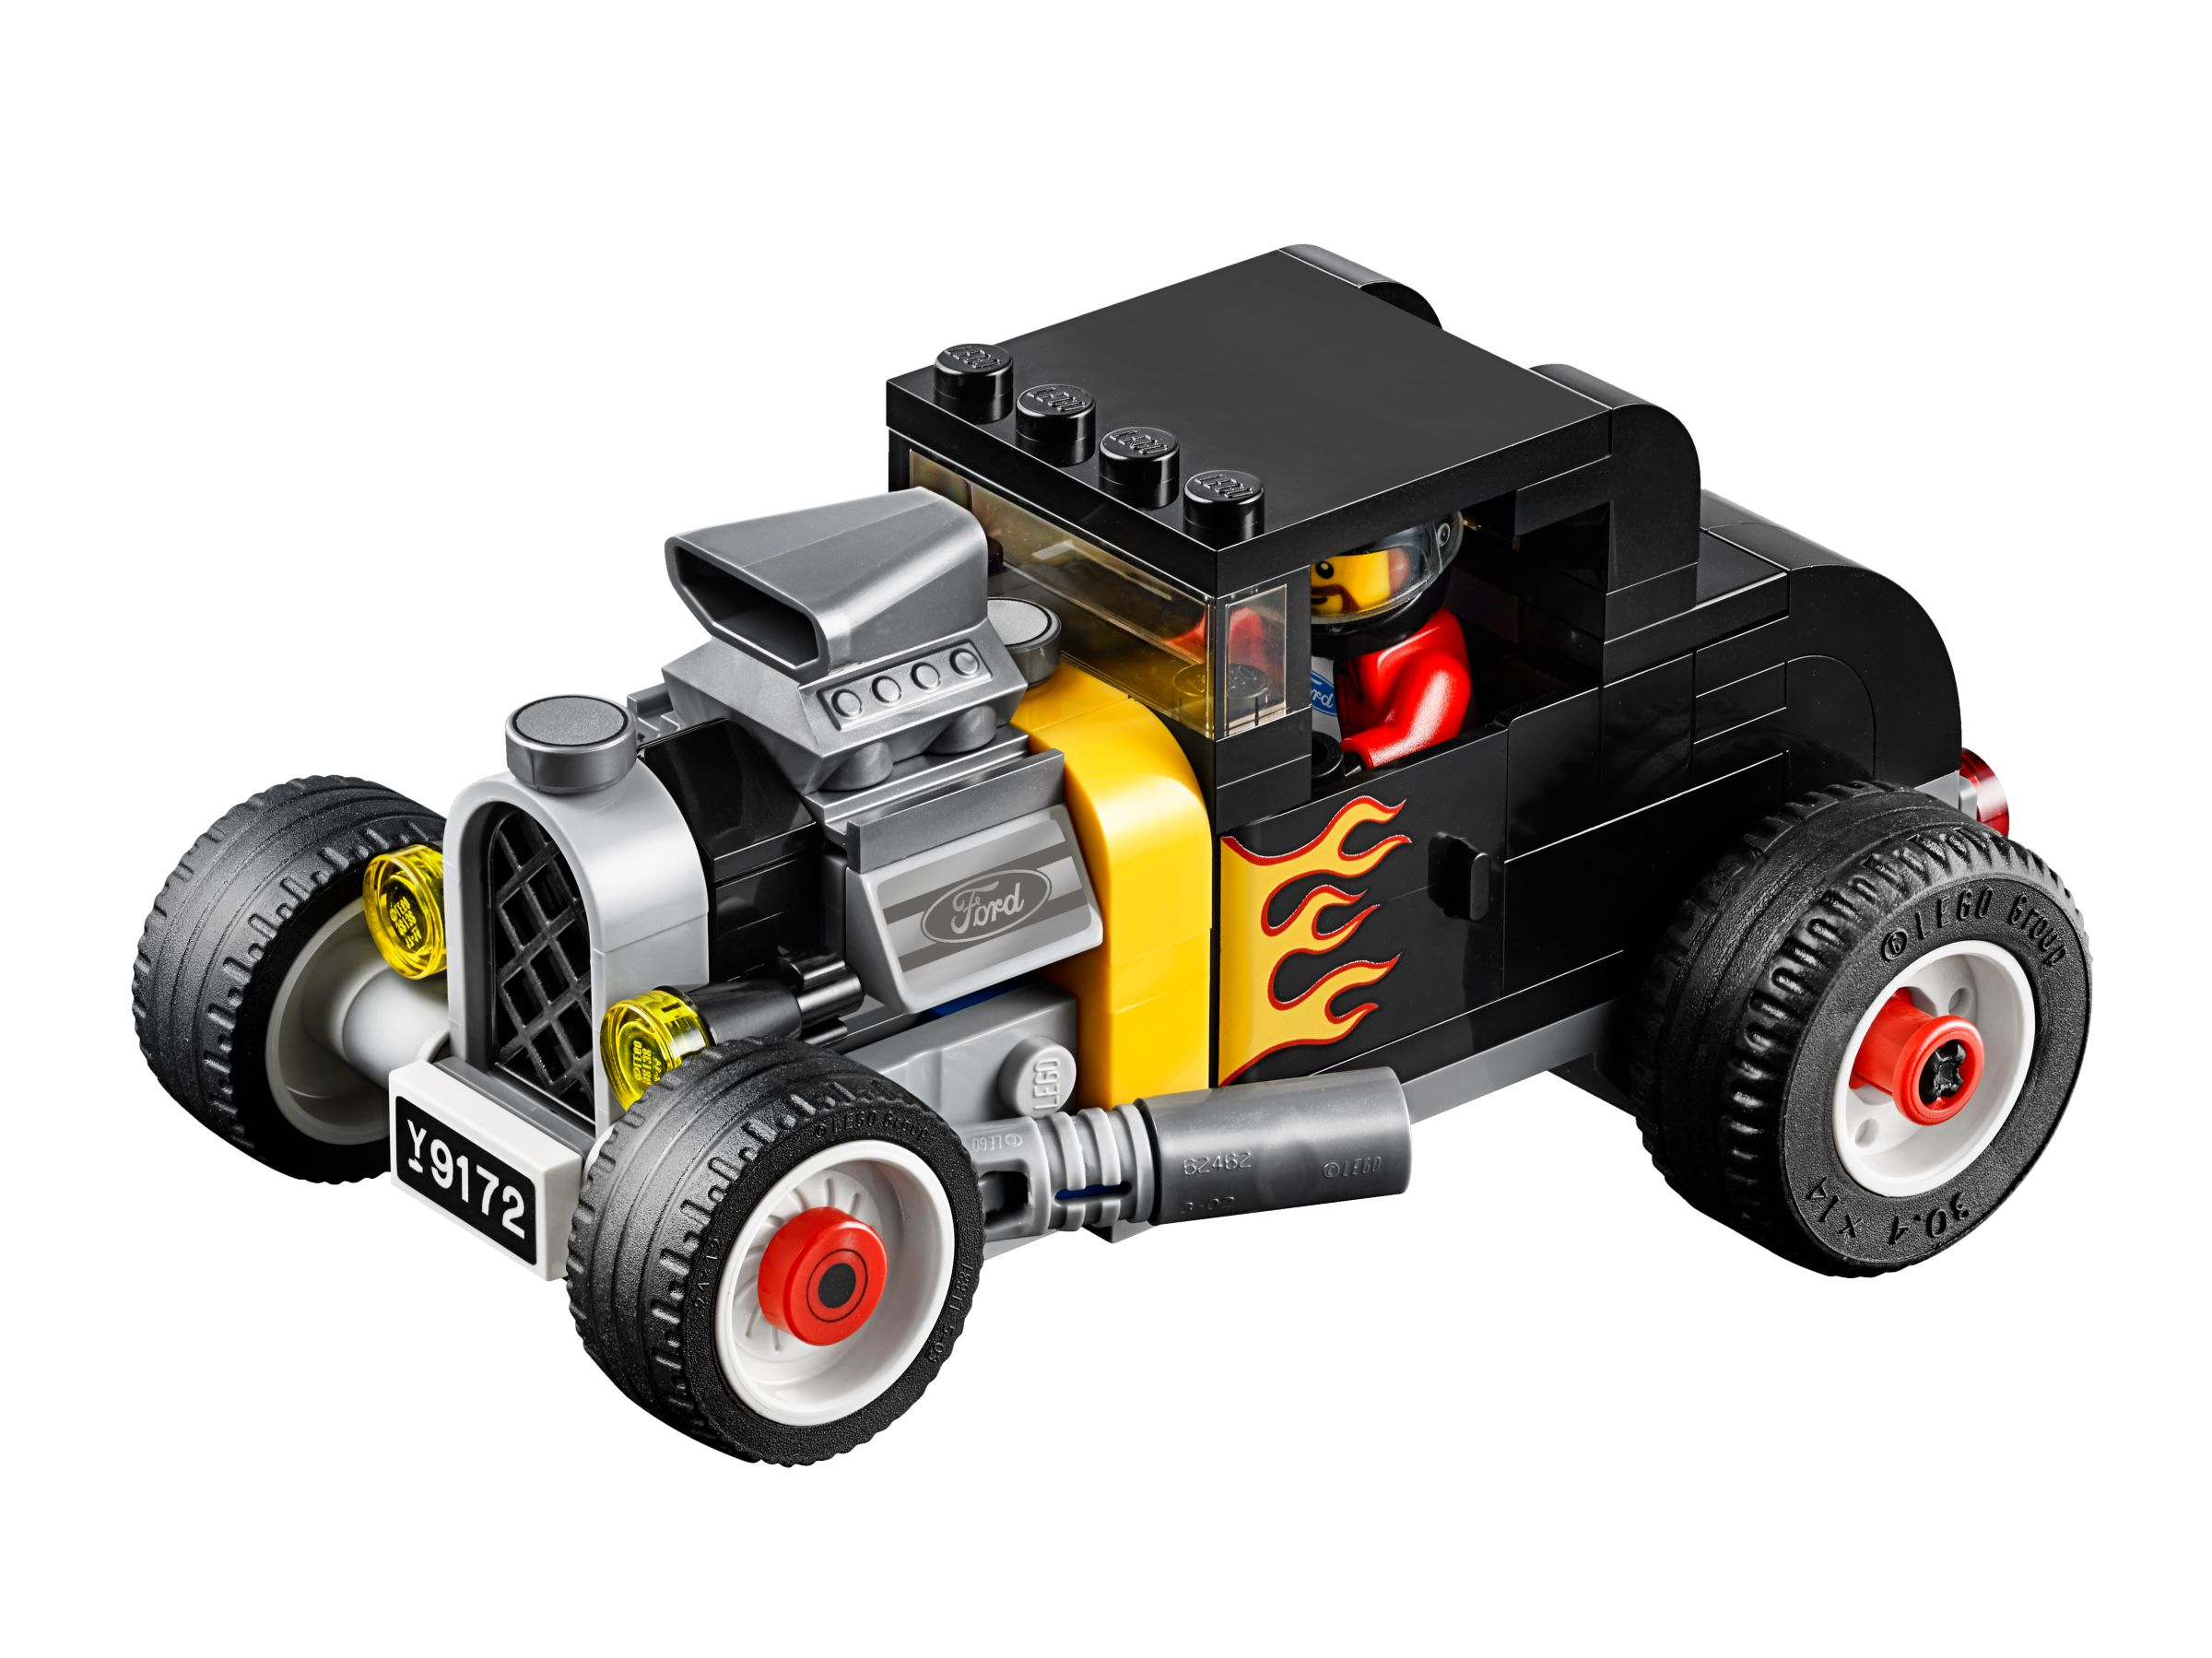 LEGO Speed Champions 75875 Ford F-150 Raptor & Ford Model A Hot Rod LEGO_75875_alt2.jpg